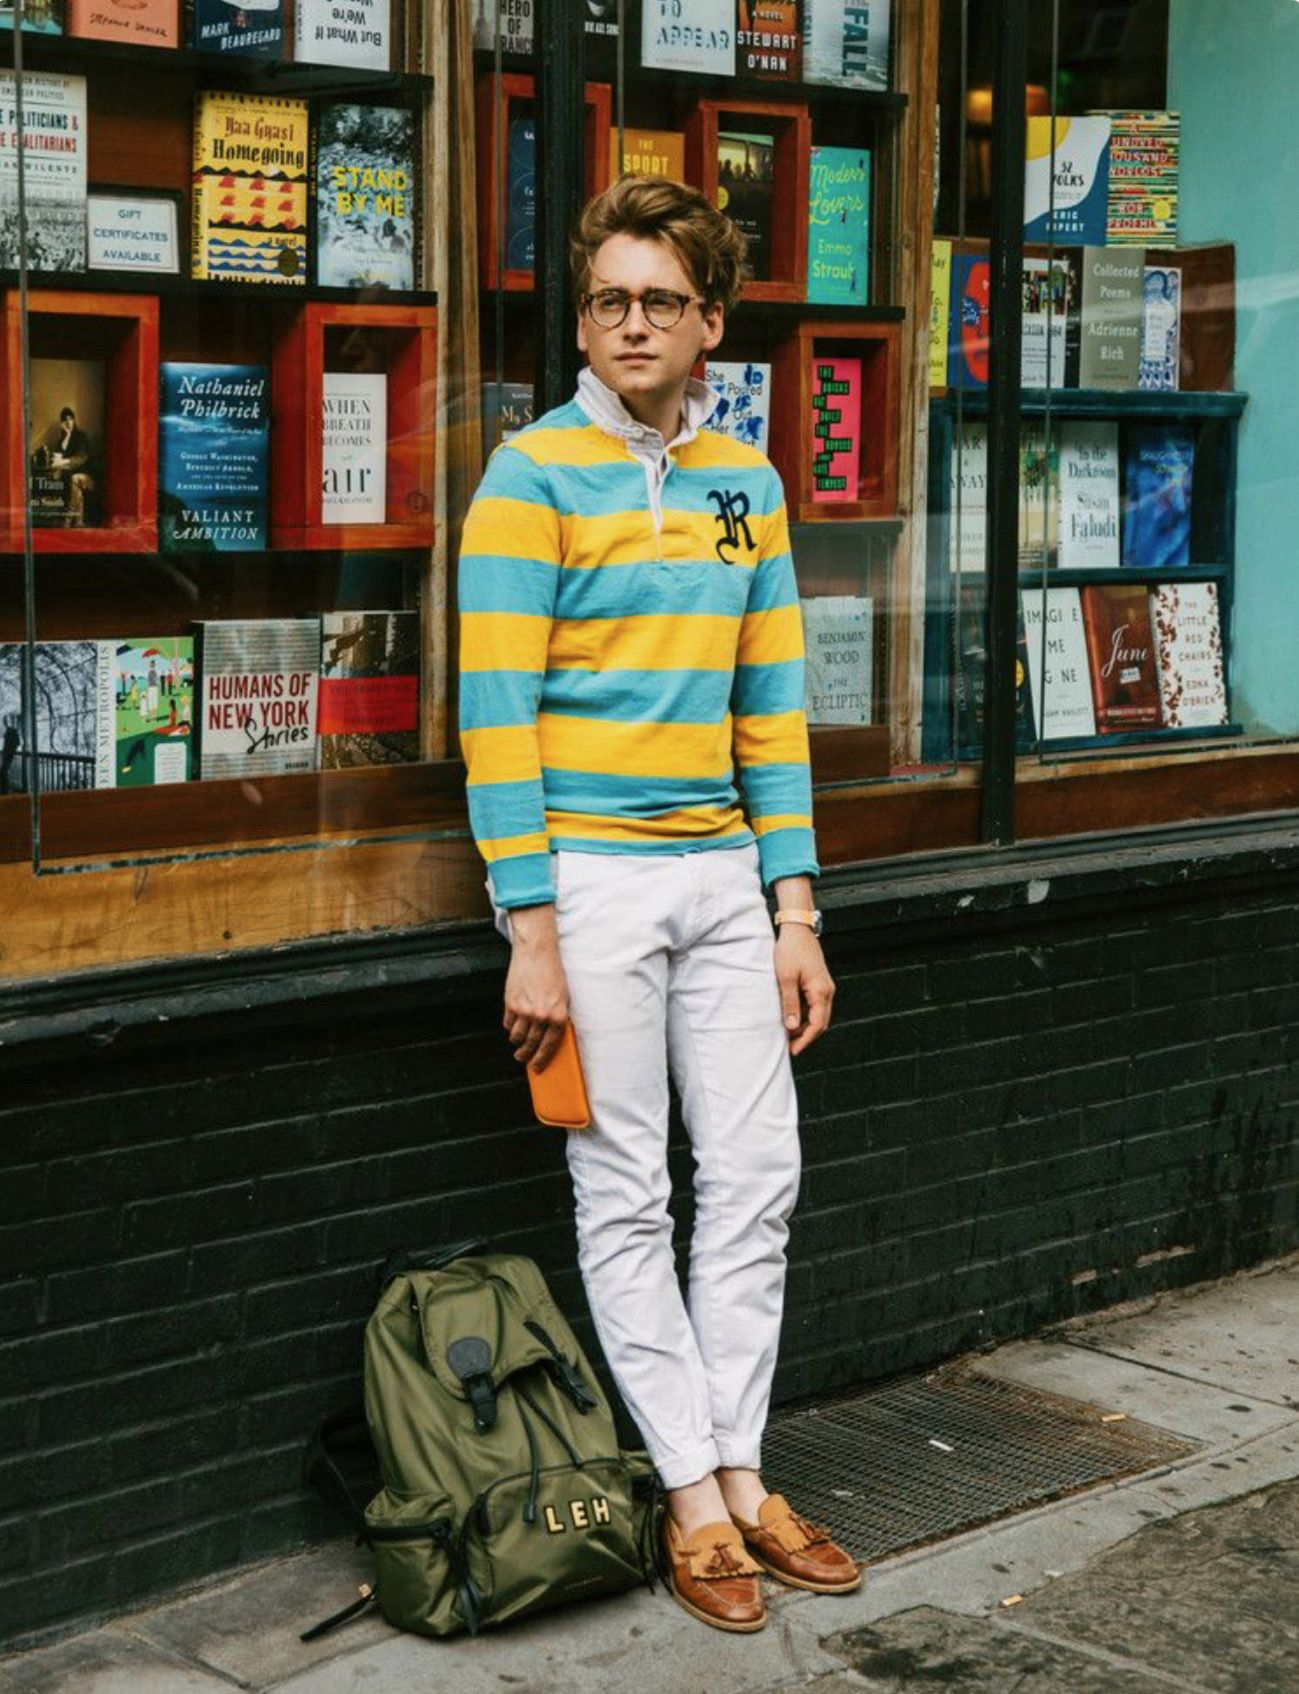 e377dfa609 Pin by Callum Tostevin-Hall on NavyBlazer in 2019 | Preppy outfits ...